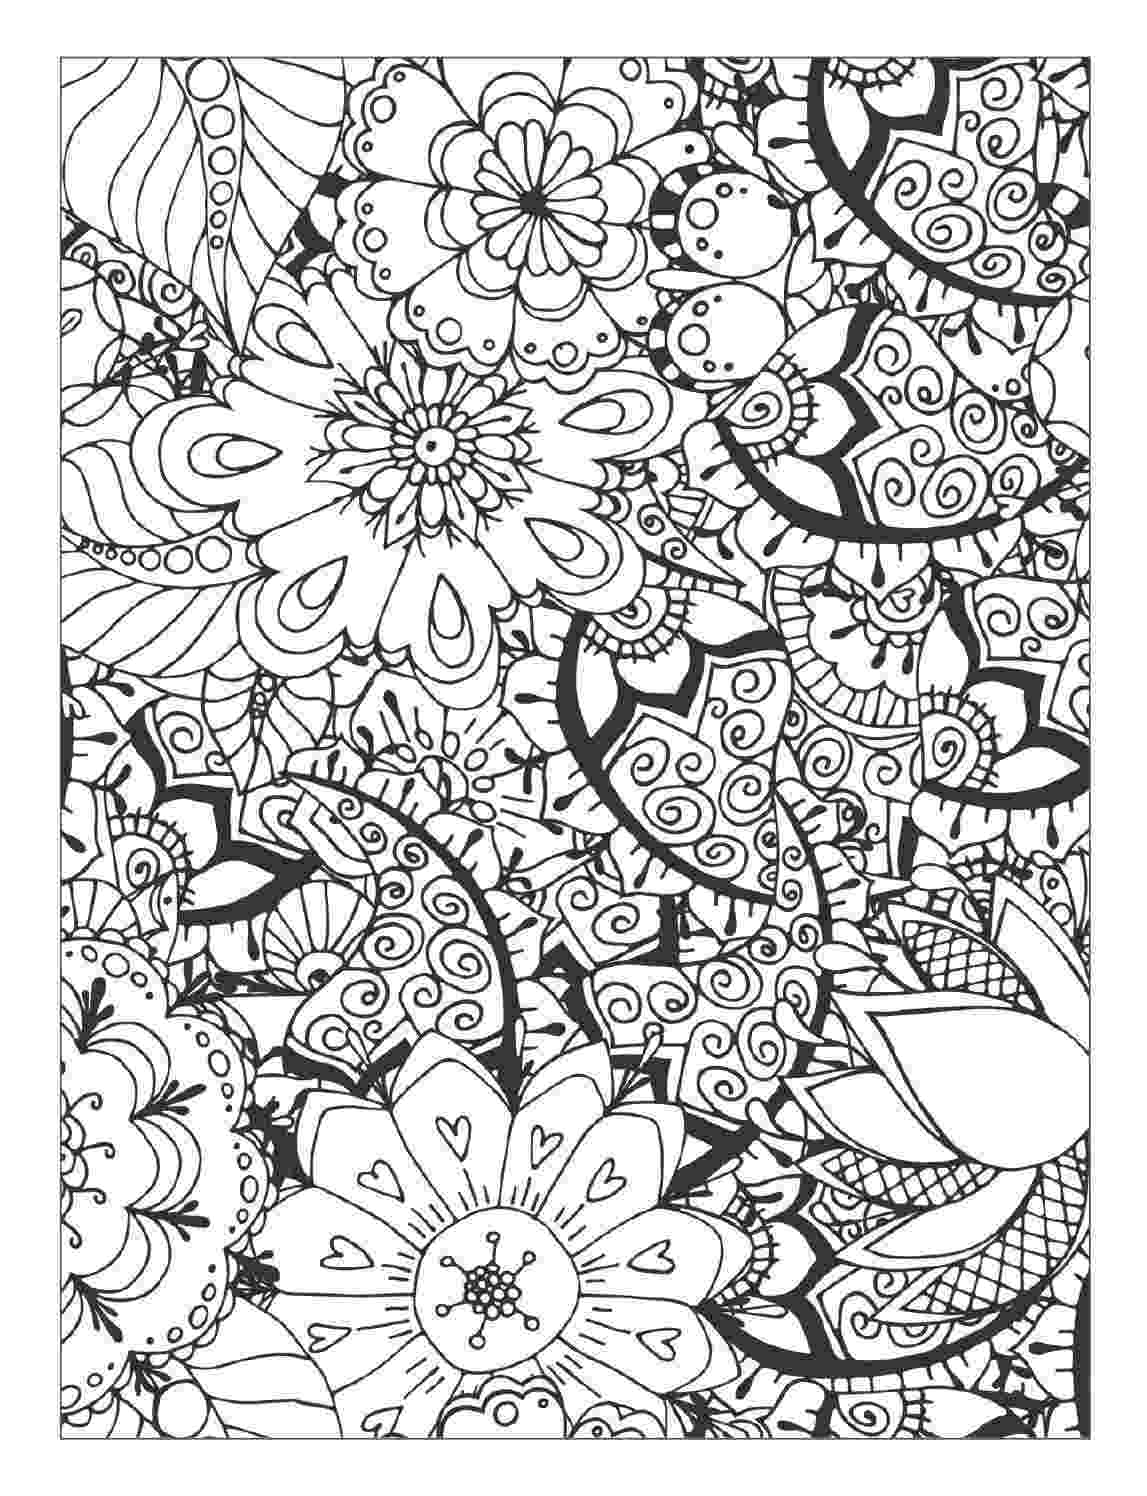 beautiful flowers coloring pages beautiful flowers detailed floral designs coloring book pages flowers beautiful coloring